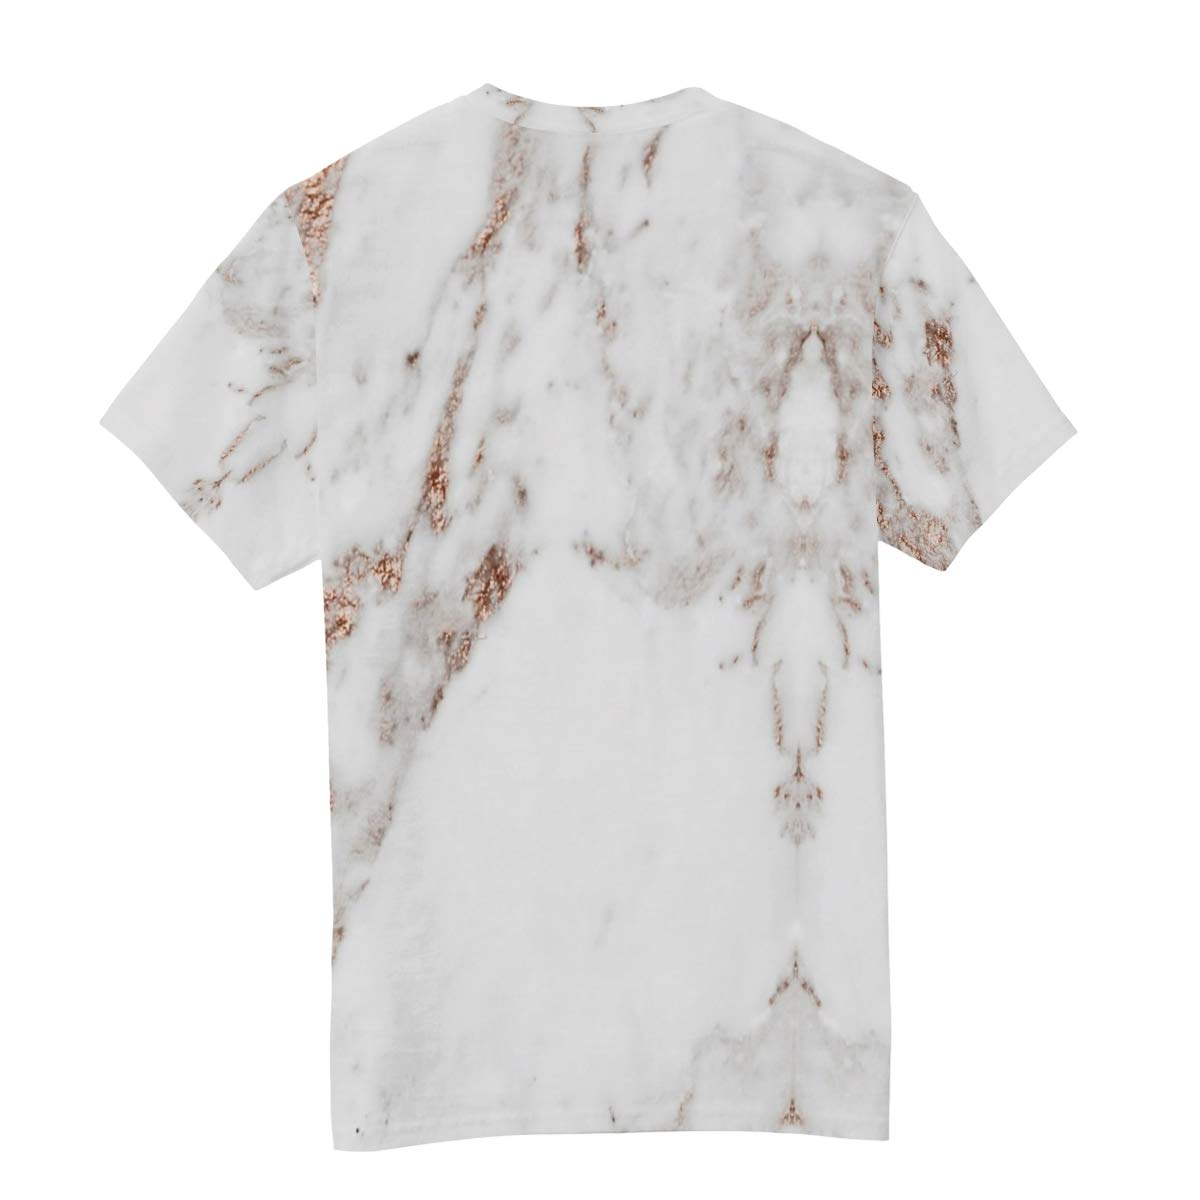 Horatiood Huberyyd Rose Gold White Marble Mens T Shirts Graphic Funny Body Print Short T-Shirt Unisex Pullover Blouse